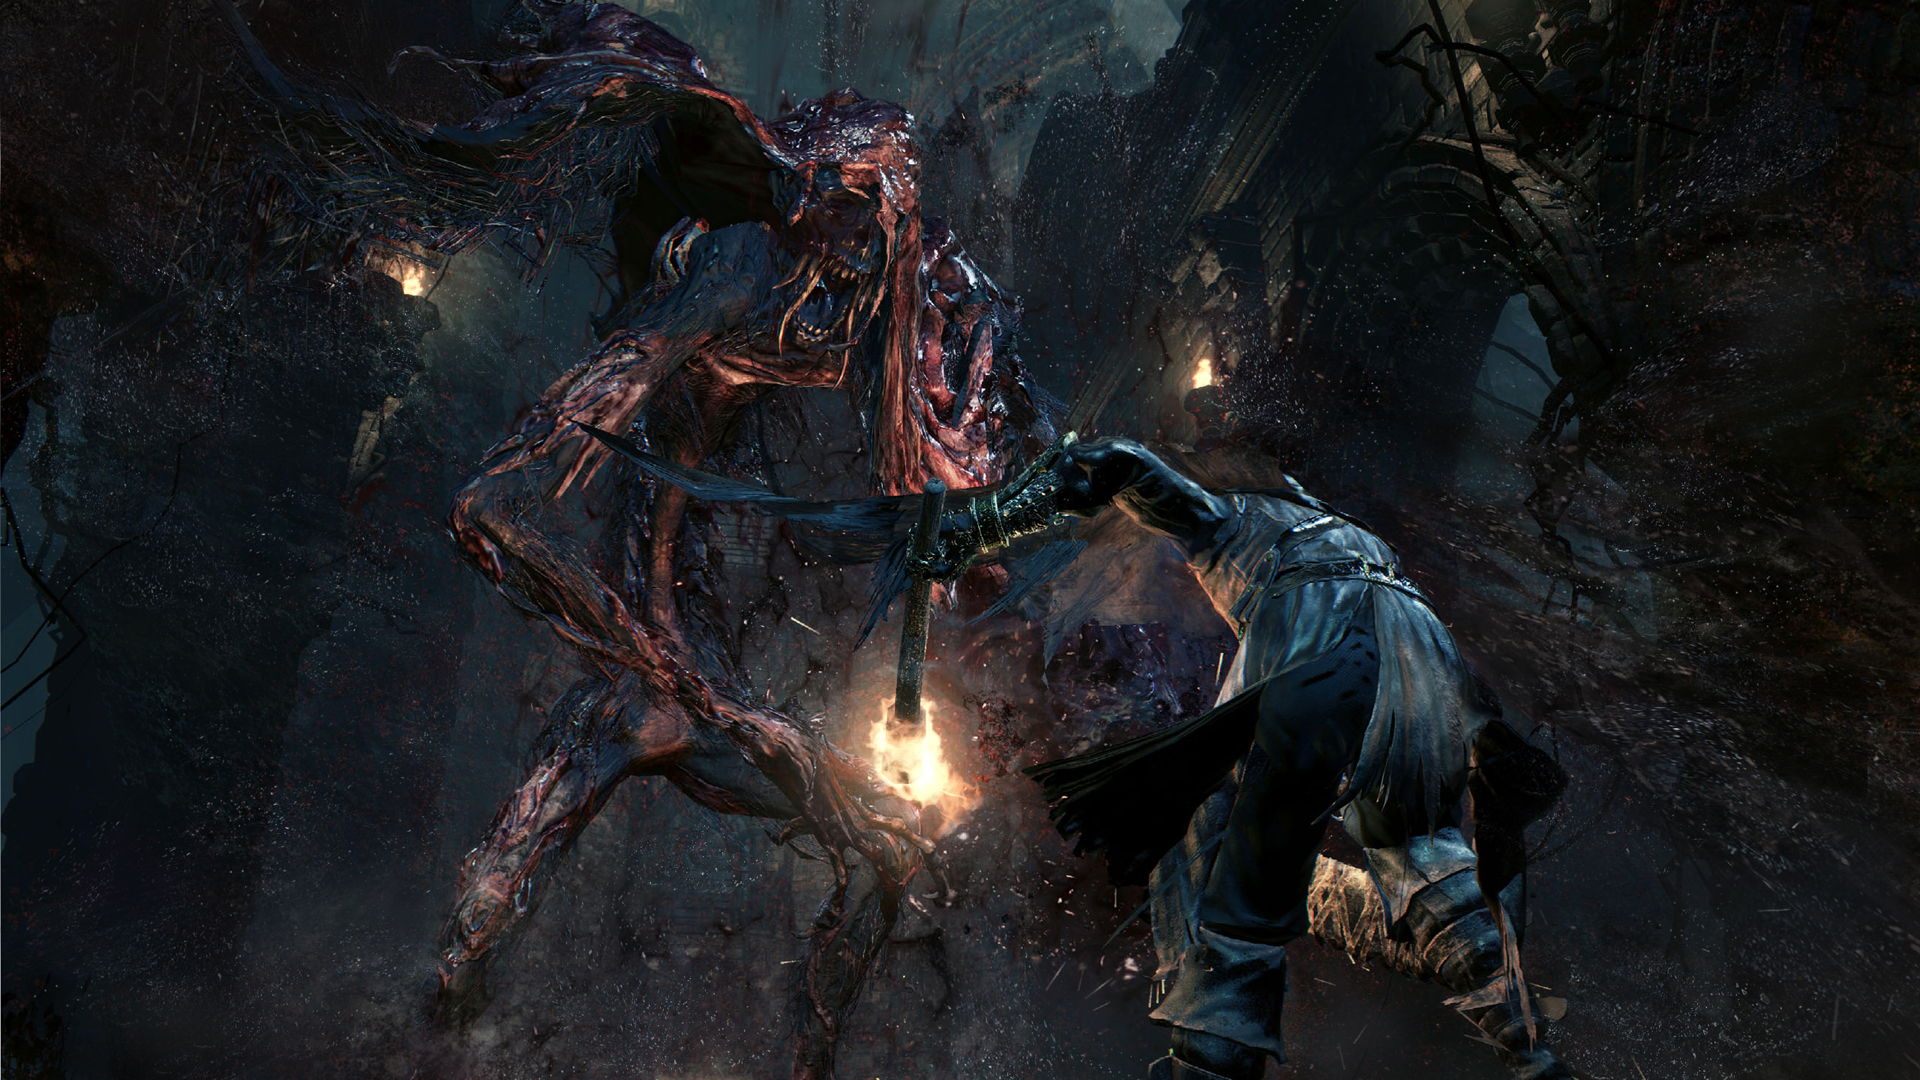 The blood starved beast is a creature that would thrive in Silent Hill just as much as it does in Yharnam.